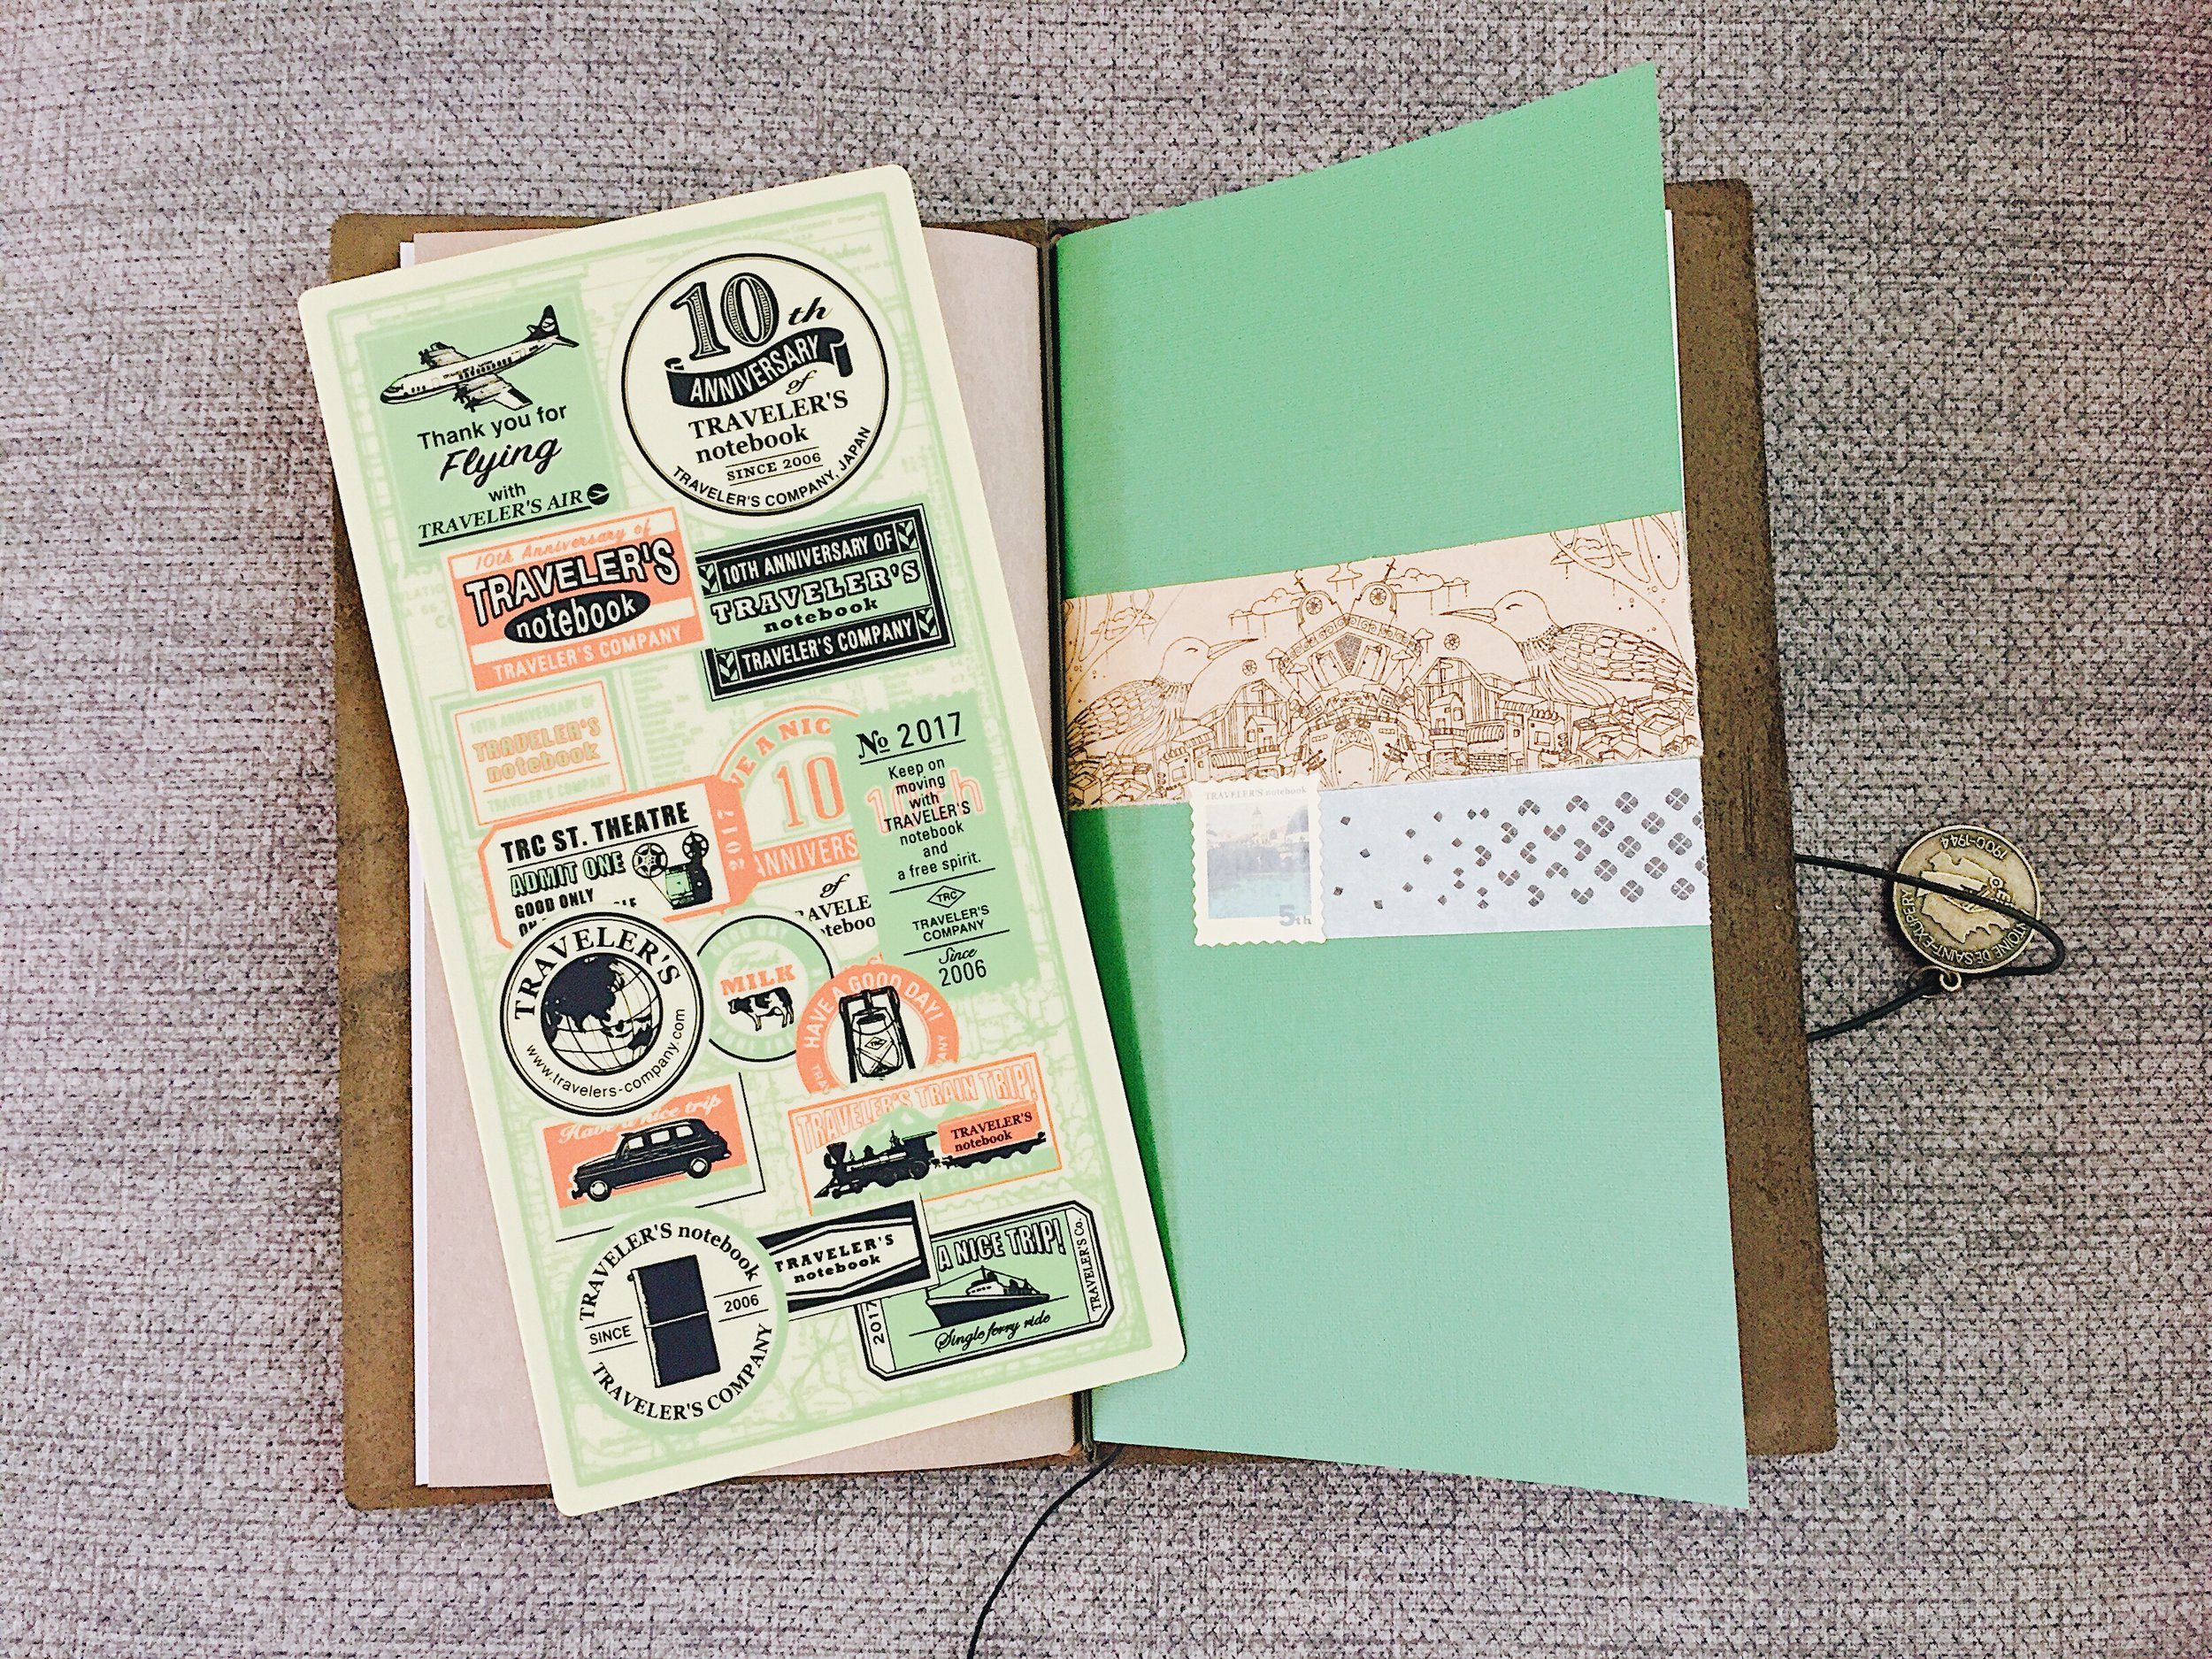 I placed the undated weekly insert after the blank insert the TN originally came with. I reused parts of the packaging to decorate the front of the insert, which I found to be a more unique way to embellish it than using my washi tapes.